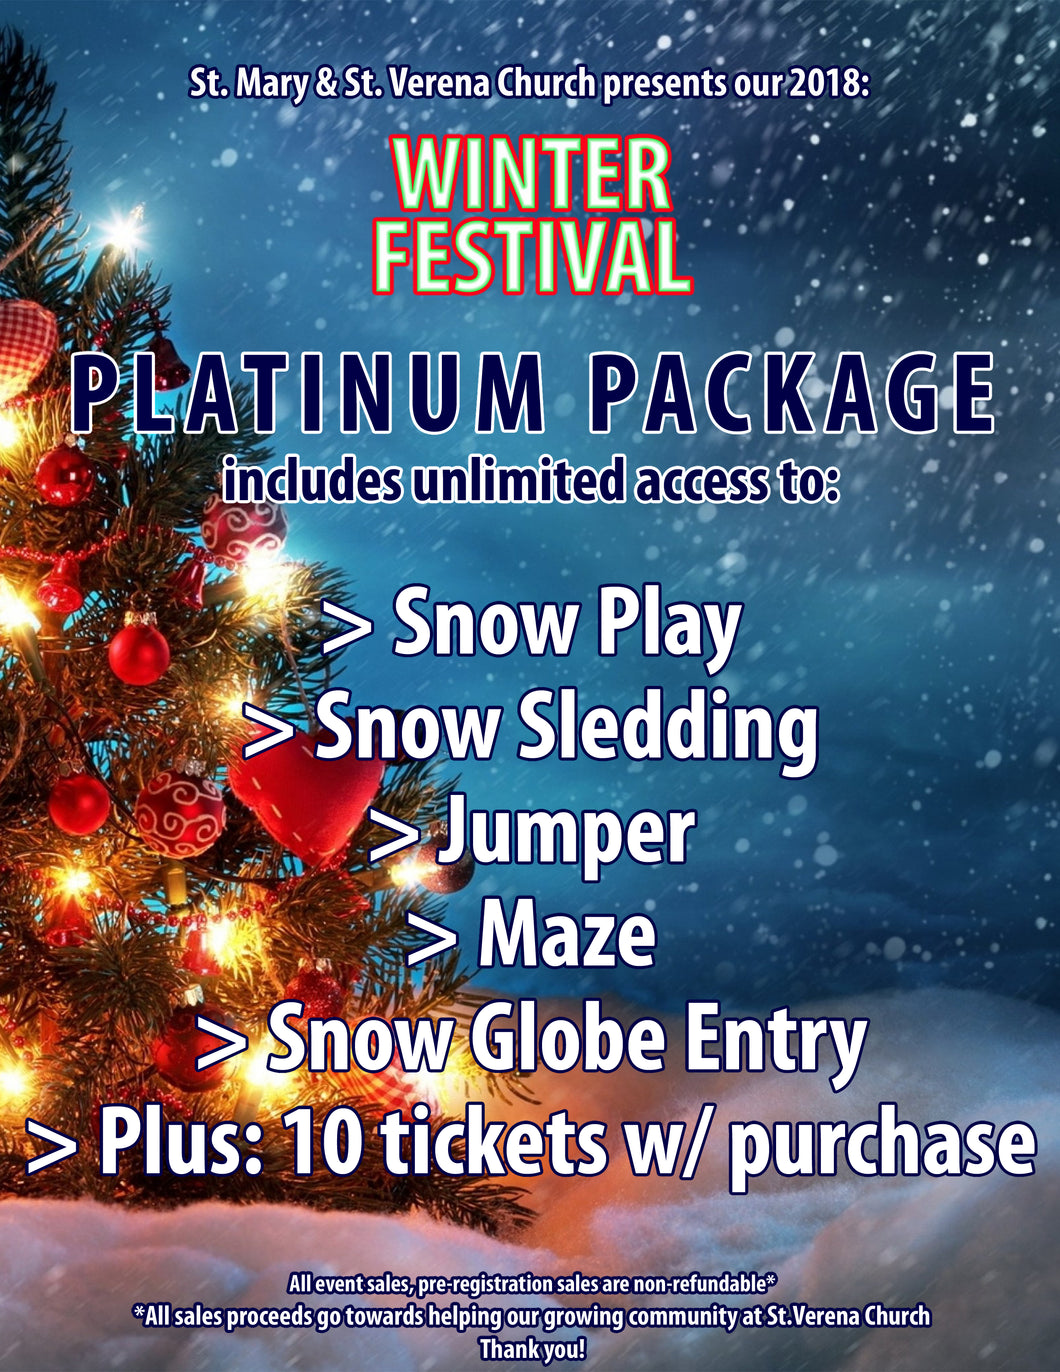 BOGO 2 PLATINUM Package Wristbands